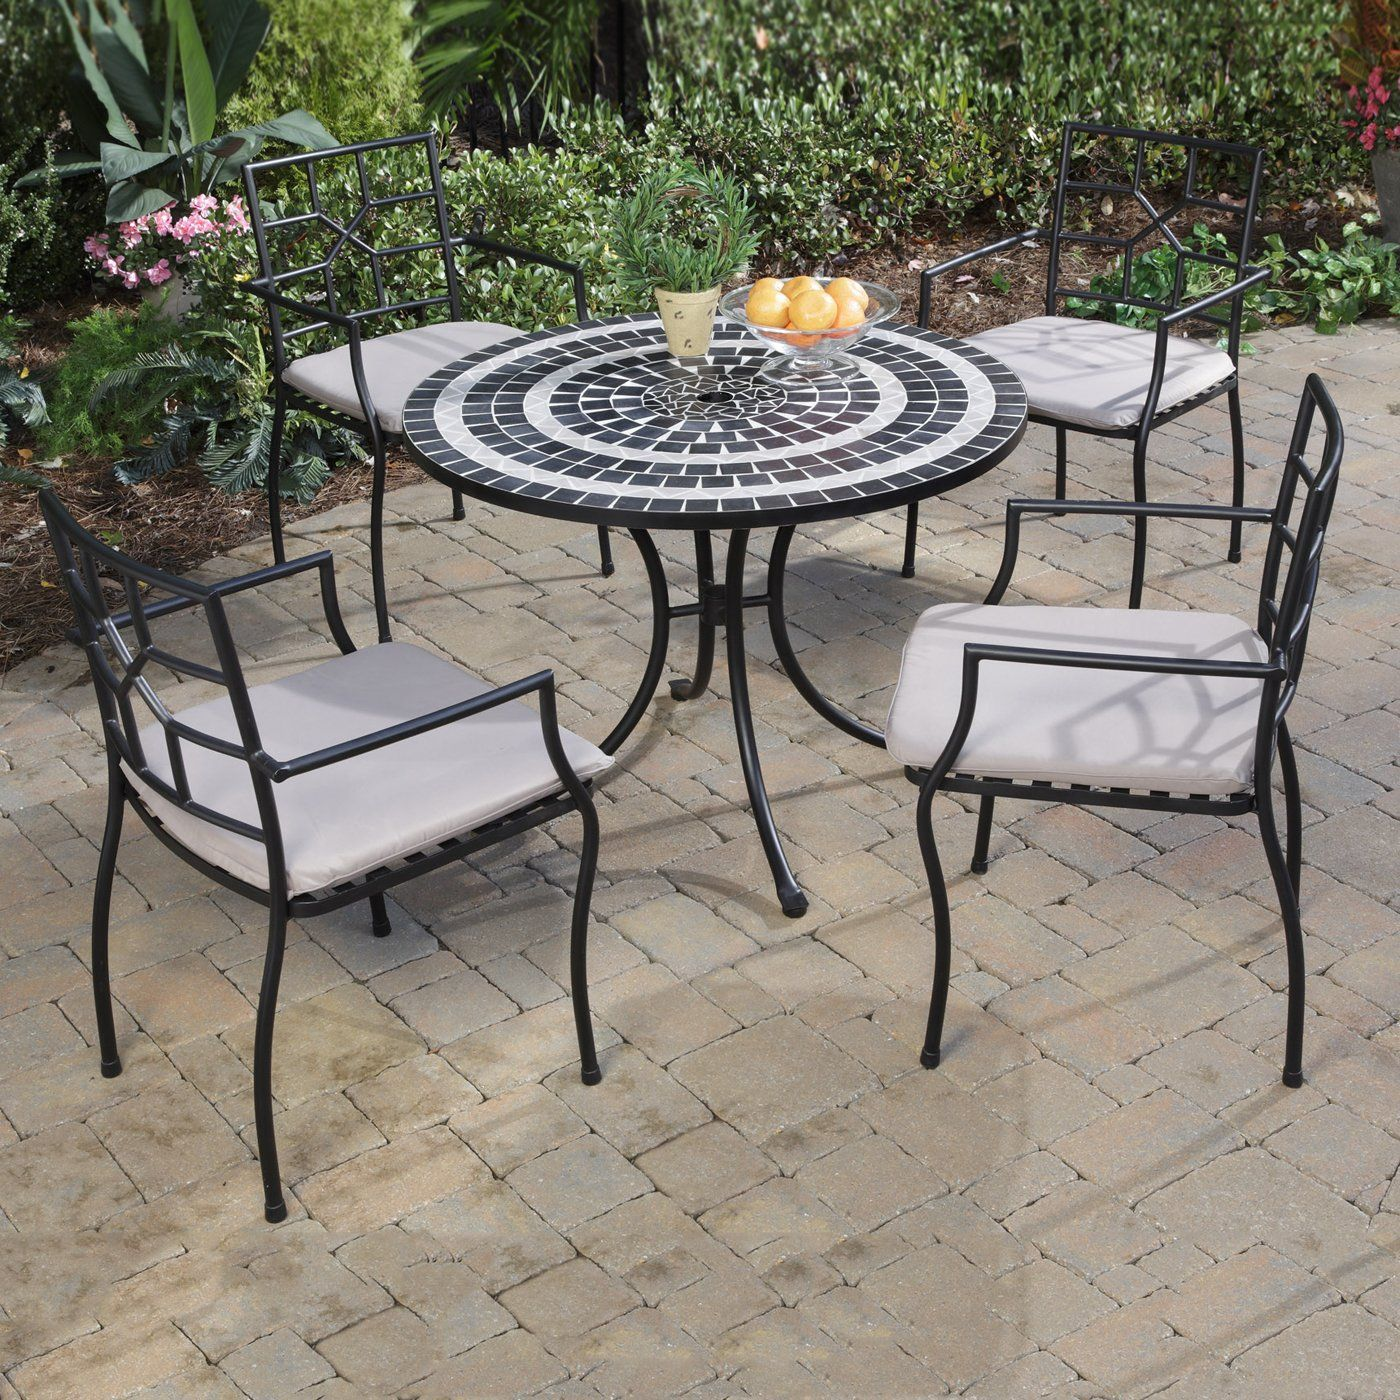 Cambria Patio Furniture.Home Styles 5602 3082 Delmar Table Cambria Chairs Outdoor Dining Set